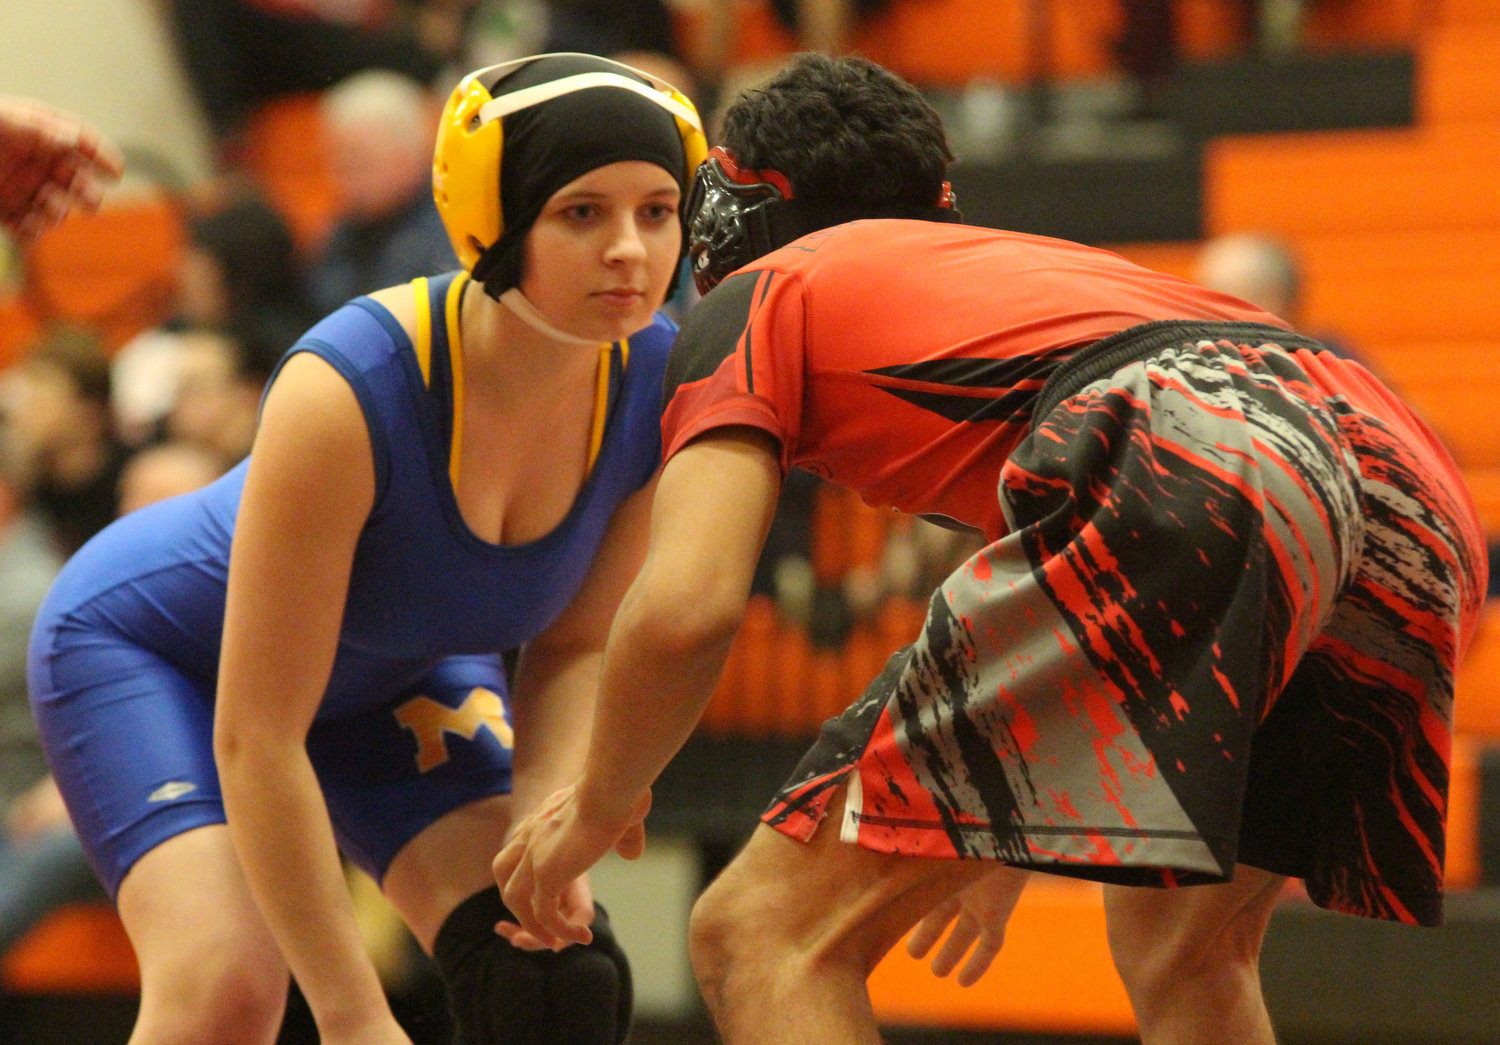 Krea Scheaffer earned her first varsity wrestling win by forfeit at 106 pounds vs. York Suburban on Saturday. Here, she takes on her Reading opponent. She is the first female to wrestle in a Middletown varsity match.